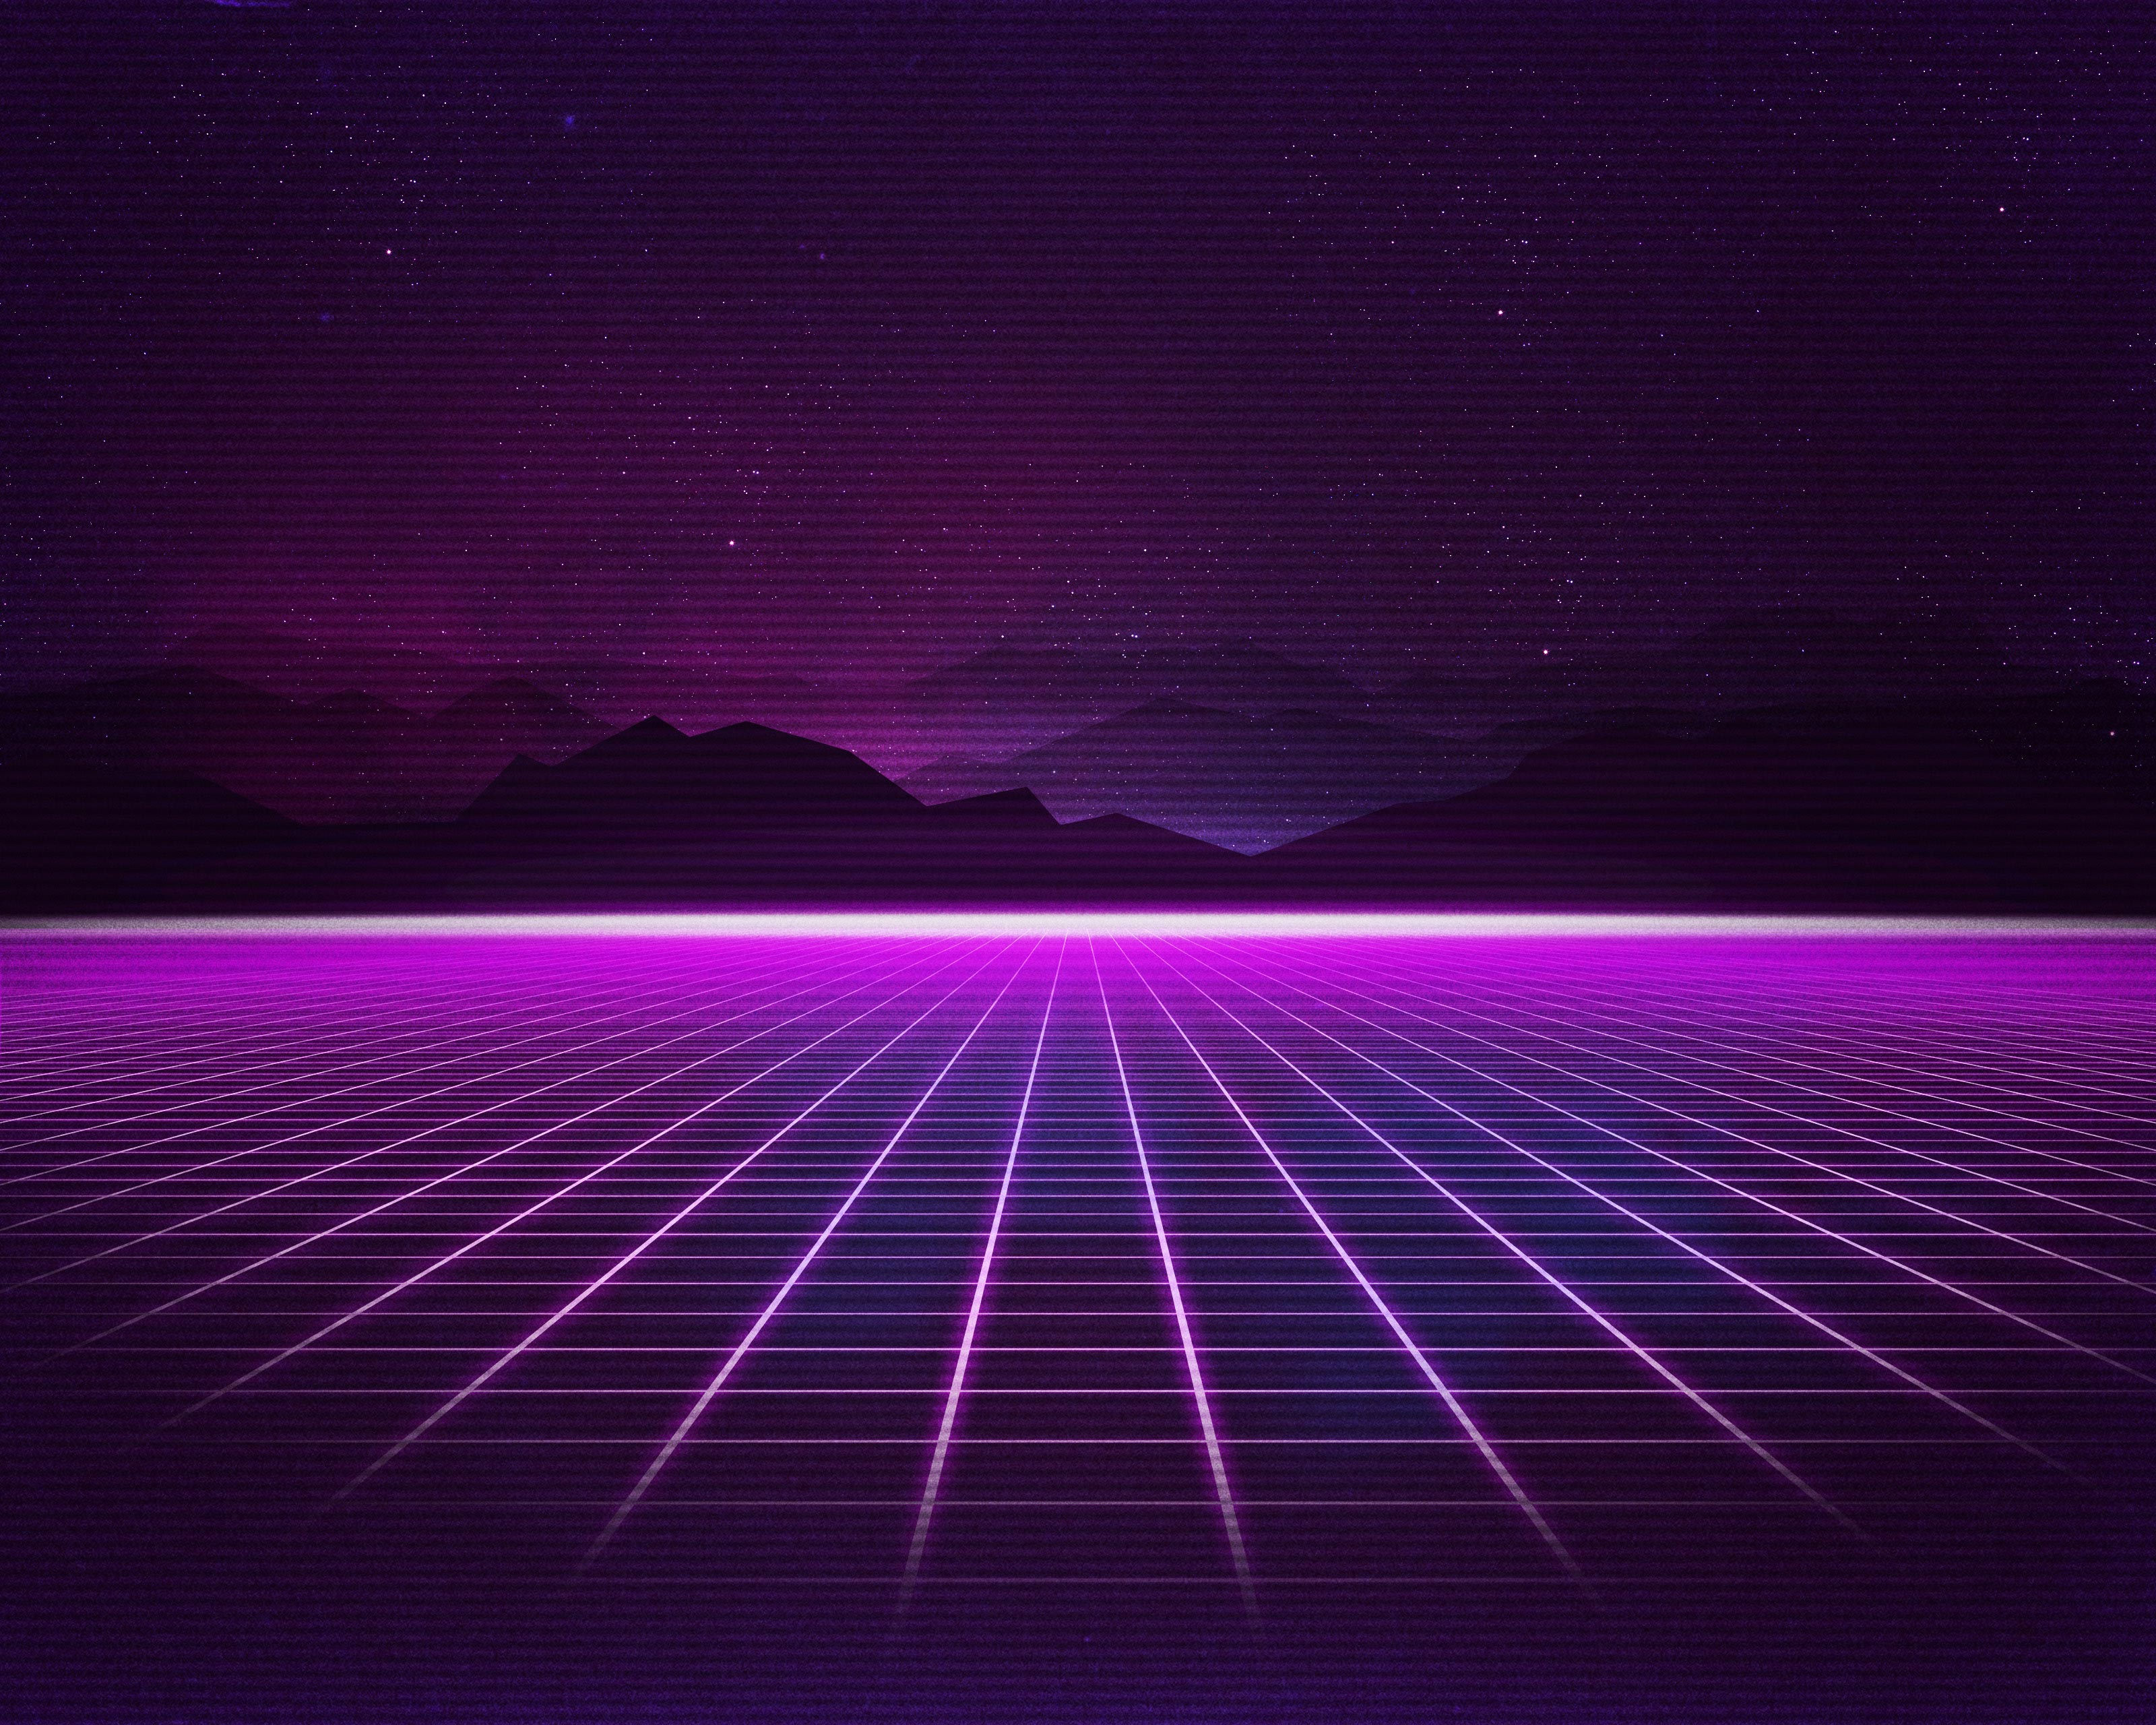 Rad Pack 80s Themed HD Wallpapers Nate Wren Graphic 3200x2560